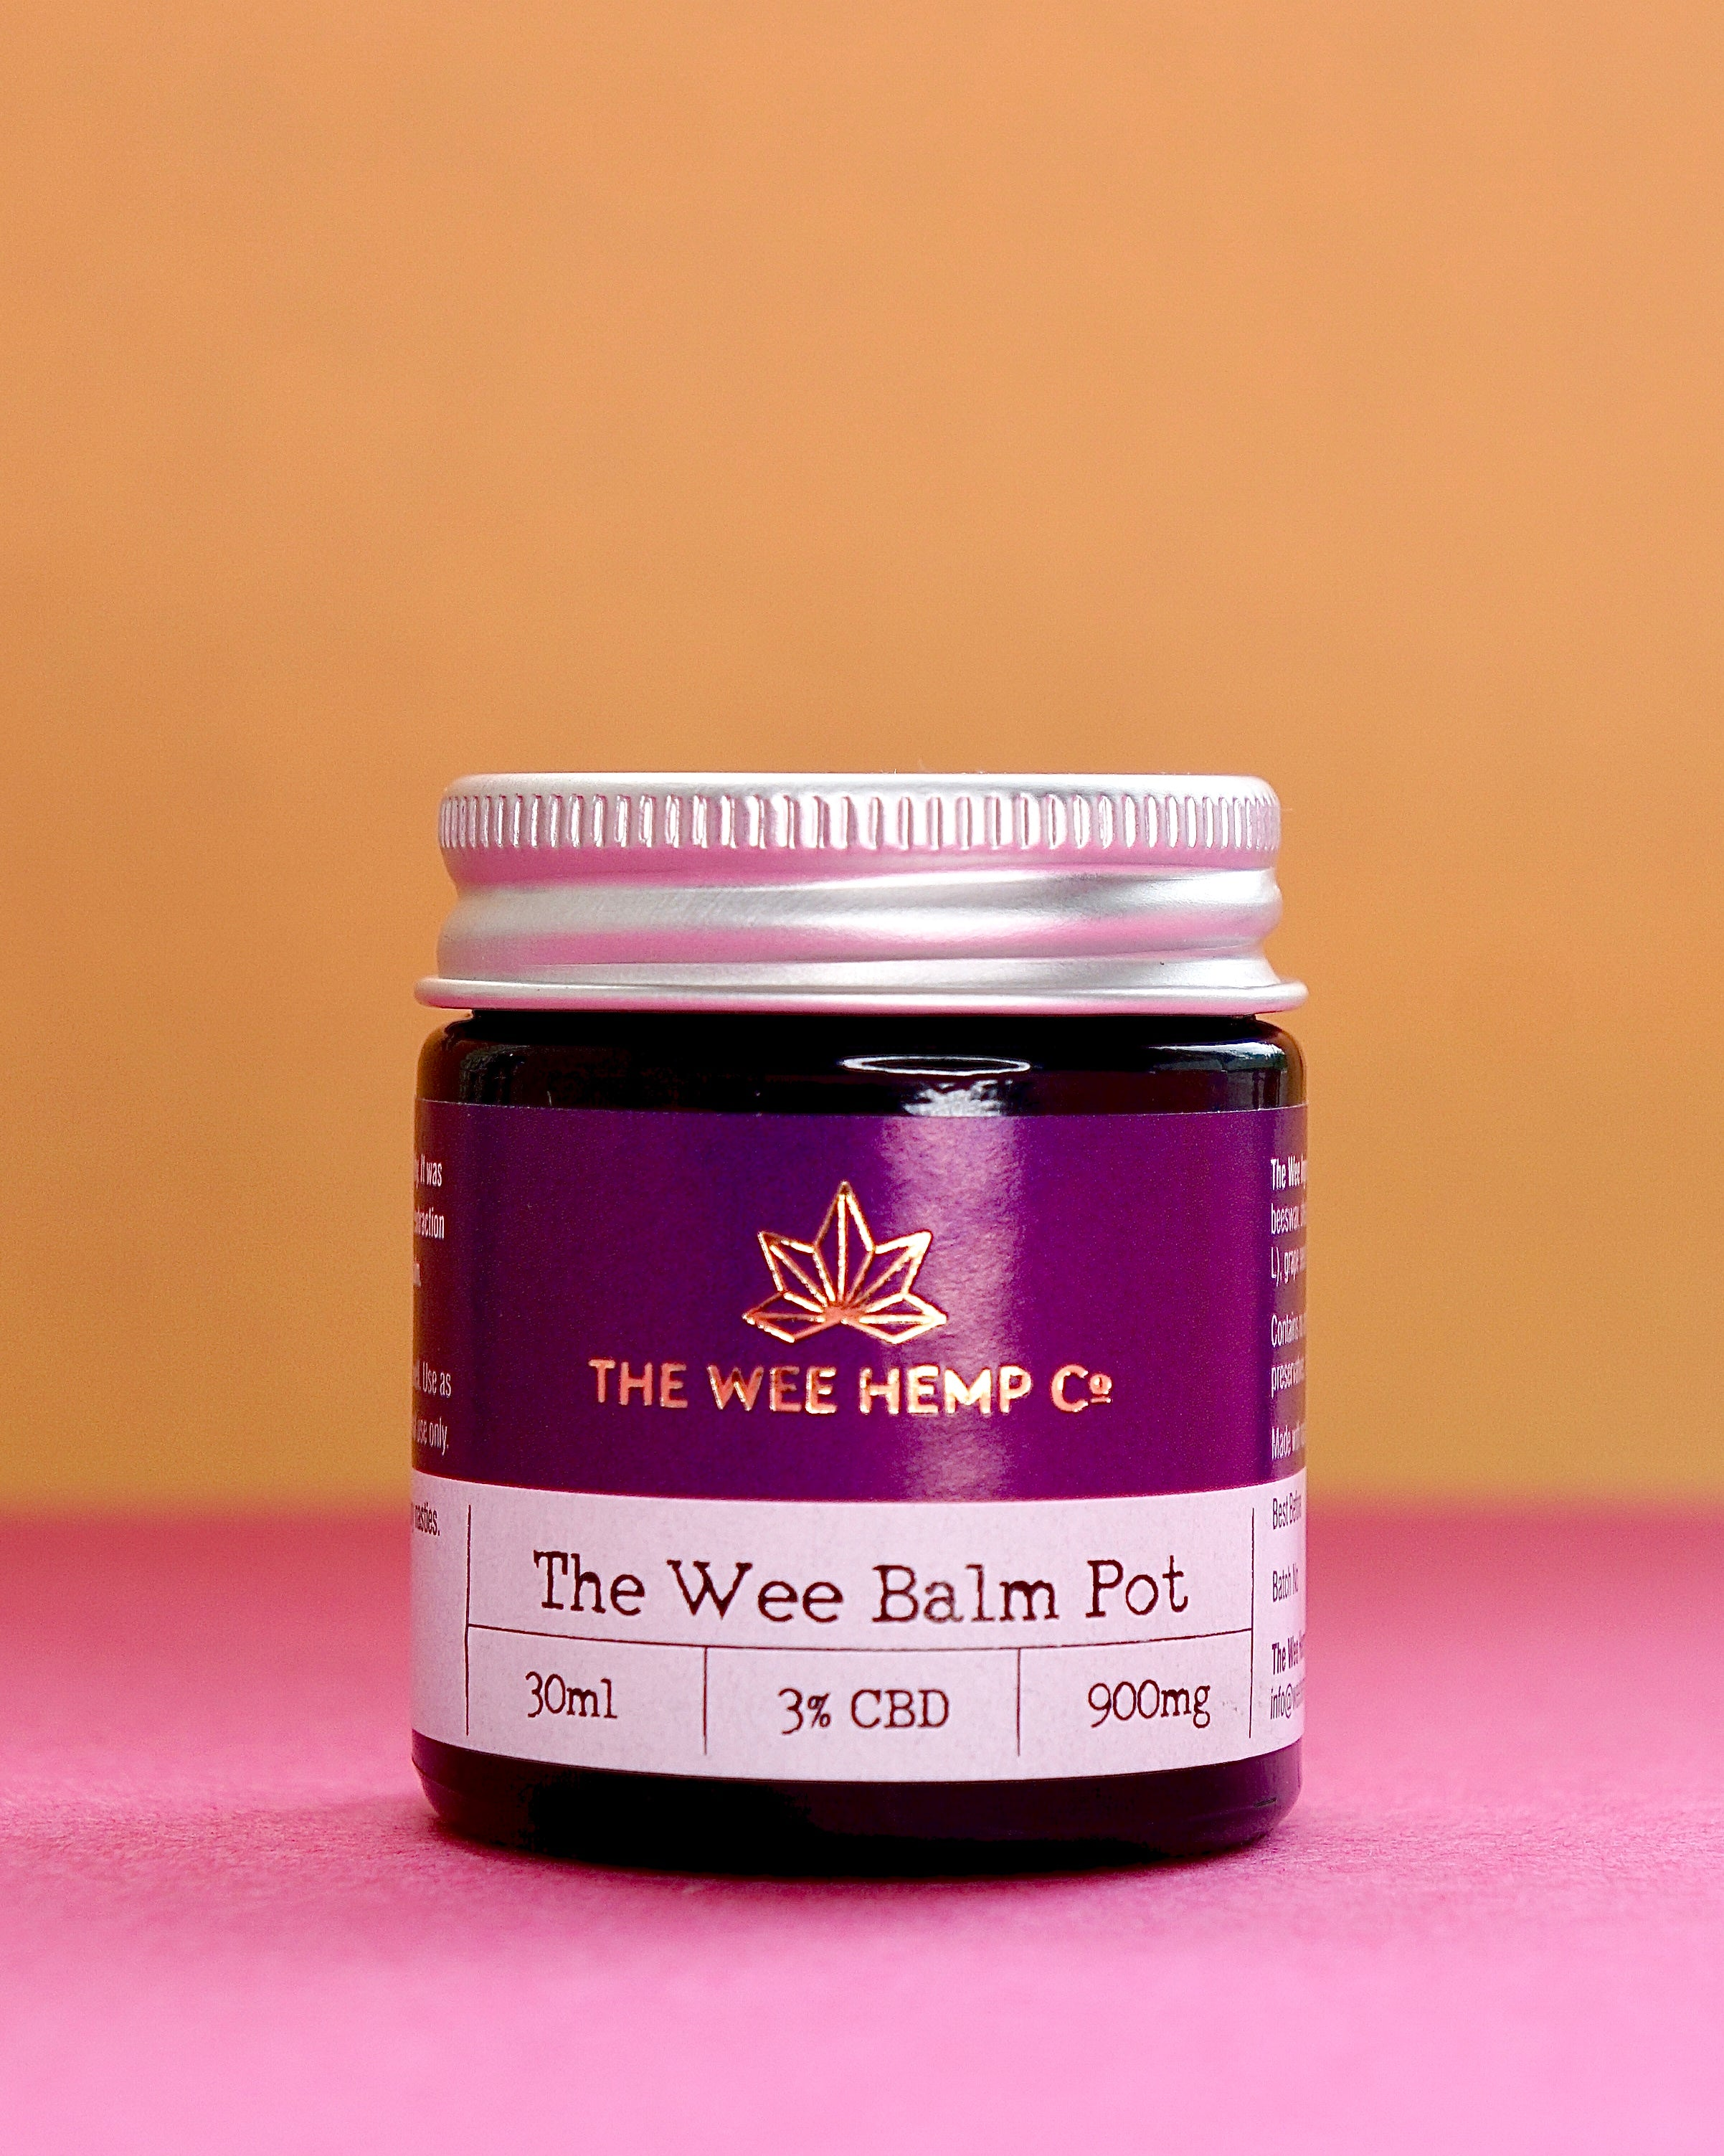 The Wee Balm Pot - 3% CBD | 900mg - Whole Plant Extract, Full Spectrum Balm The Wee Hemp Company CBD Oil Shop | Wee Hemp CBD Oil Shop | Scotland's multi award winning CBD company | CBD Oil Shop | Cannabidiol drops | Aberdeen & Aberdeenshire | CBD Oil, CBD Balm, CBD Vapes E-liquid, CBD Cream, CBD Full Spectrum CBD Oil, Broad Spectrum CBD Oil, 3rd party lab tested CBD Oil